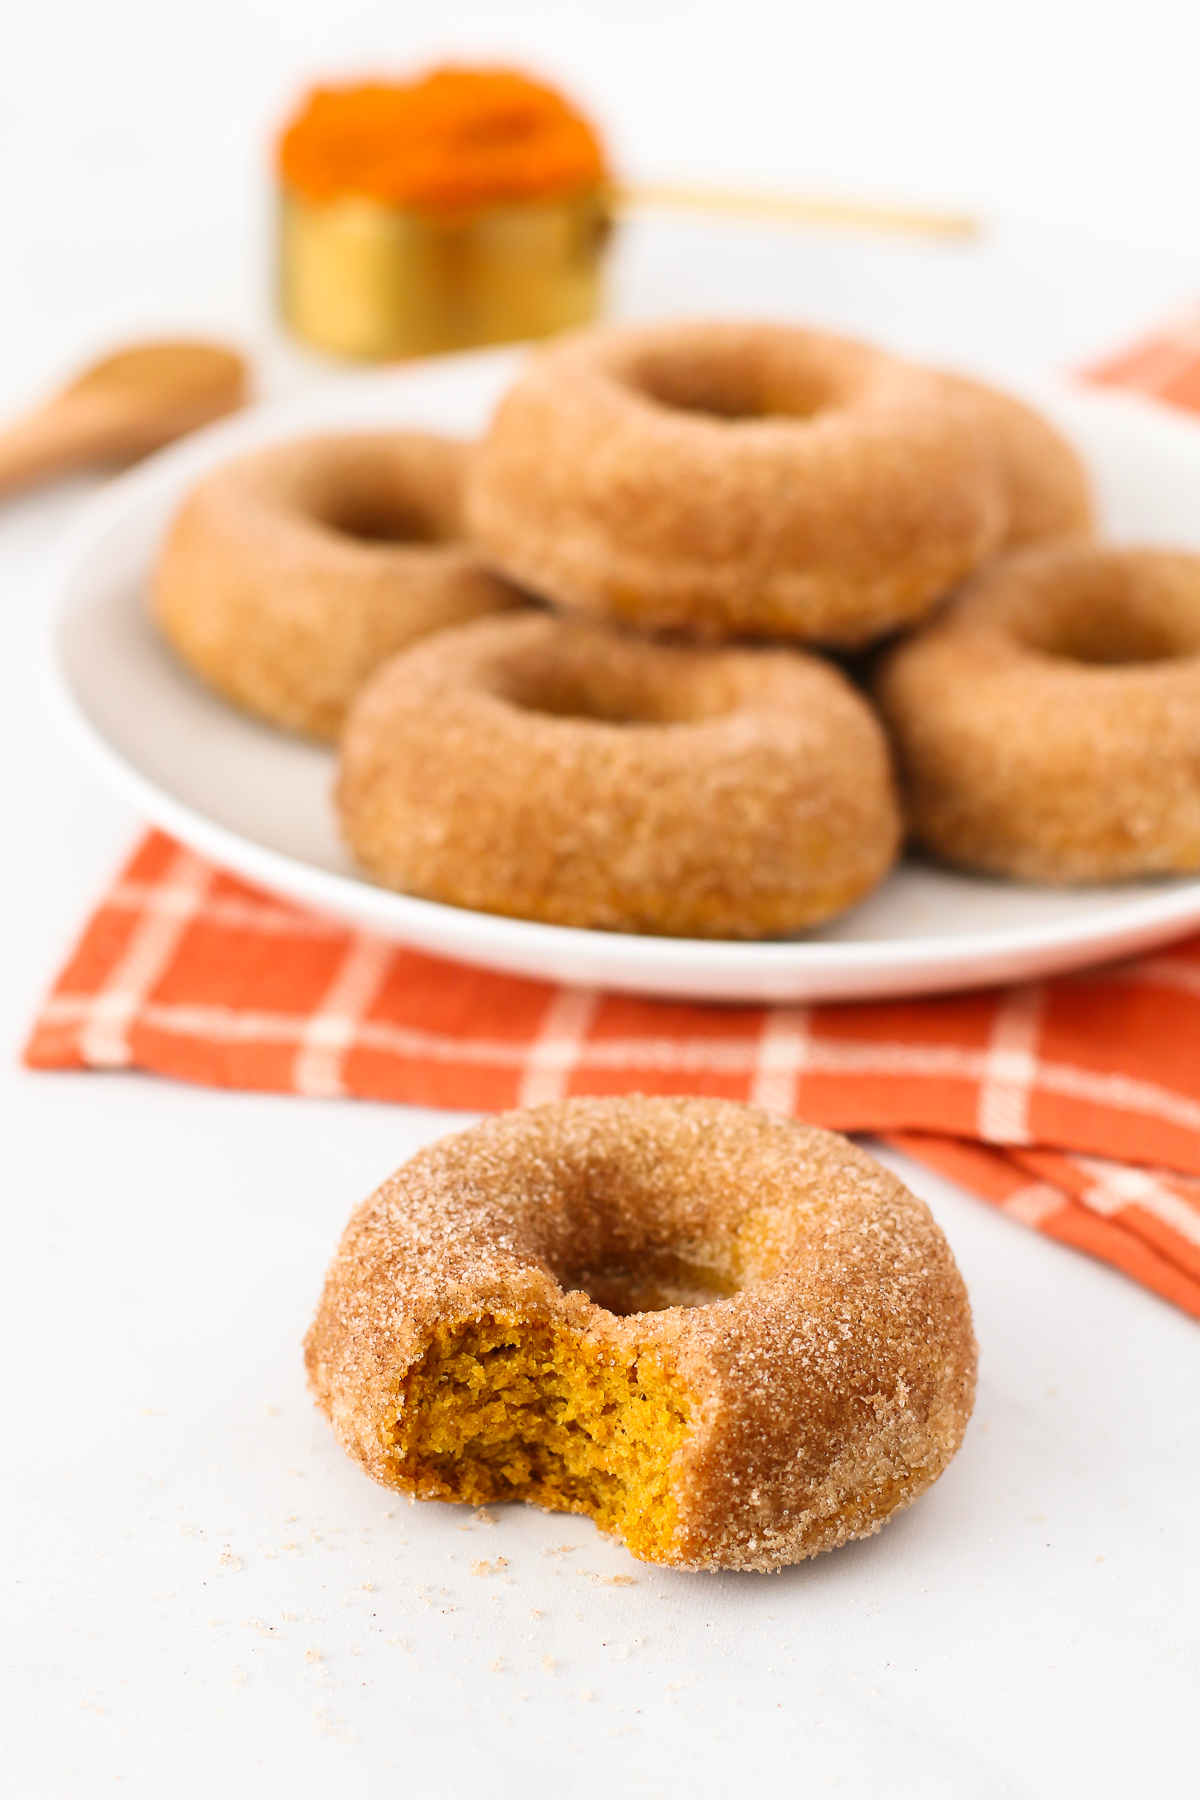 Gluten Free Vegan Cinnamon Sugar Pumpkin Donuts. Fluffy baked pumpkin donuts, coated in cinnamon sugar. These are what donut dreams are made of!